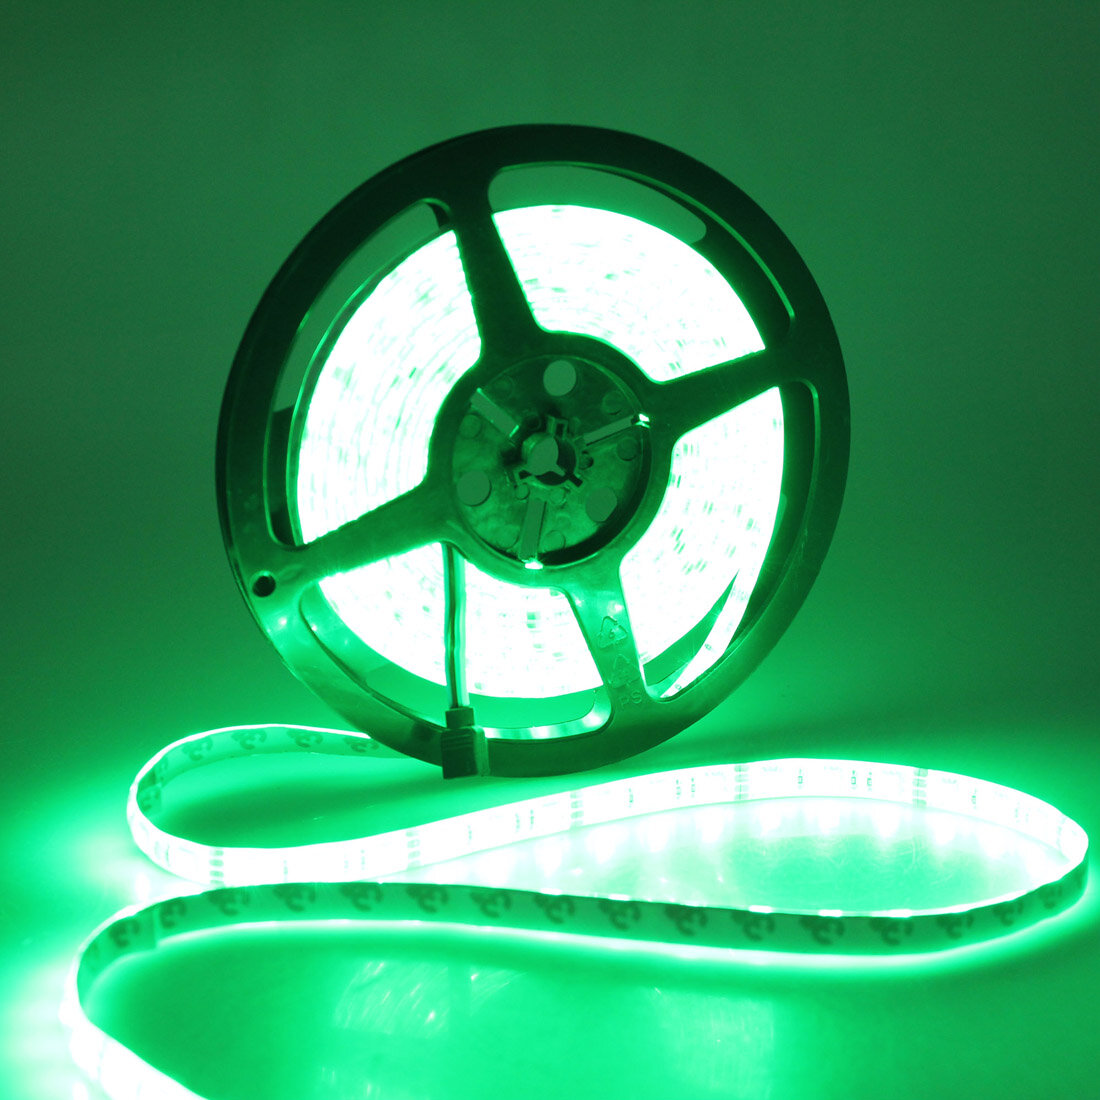 DC12V 5IN1 RGB+CCT LED Strip Light 5050 Flexible Tape Non-waterproof Indoor Lamp Home Decor - 3